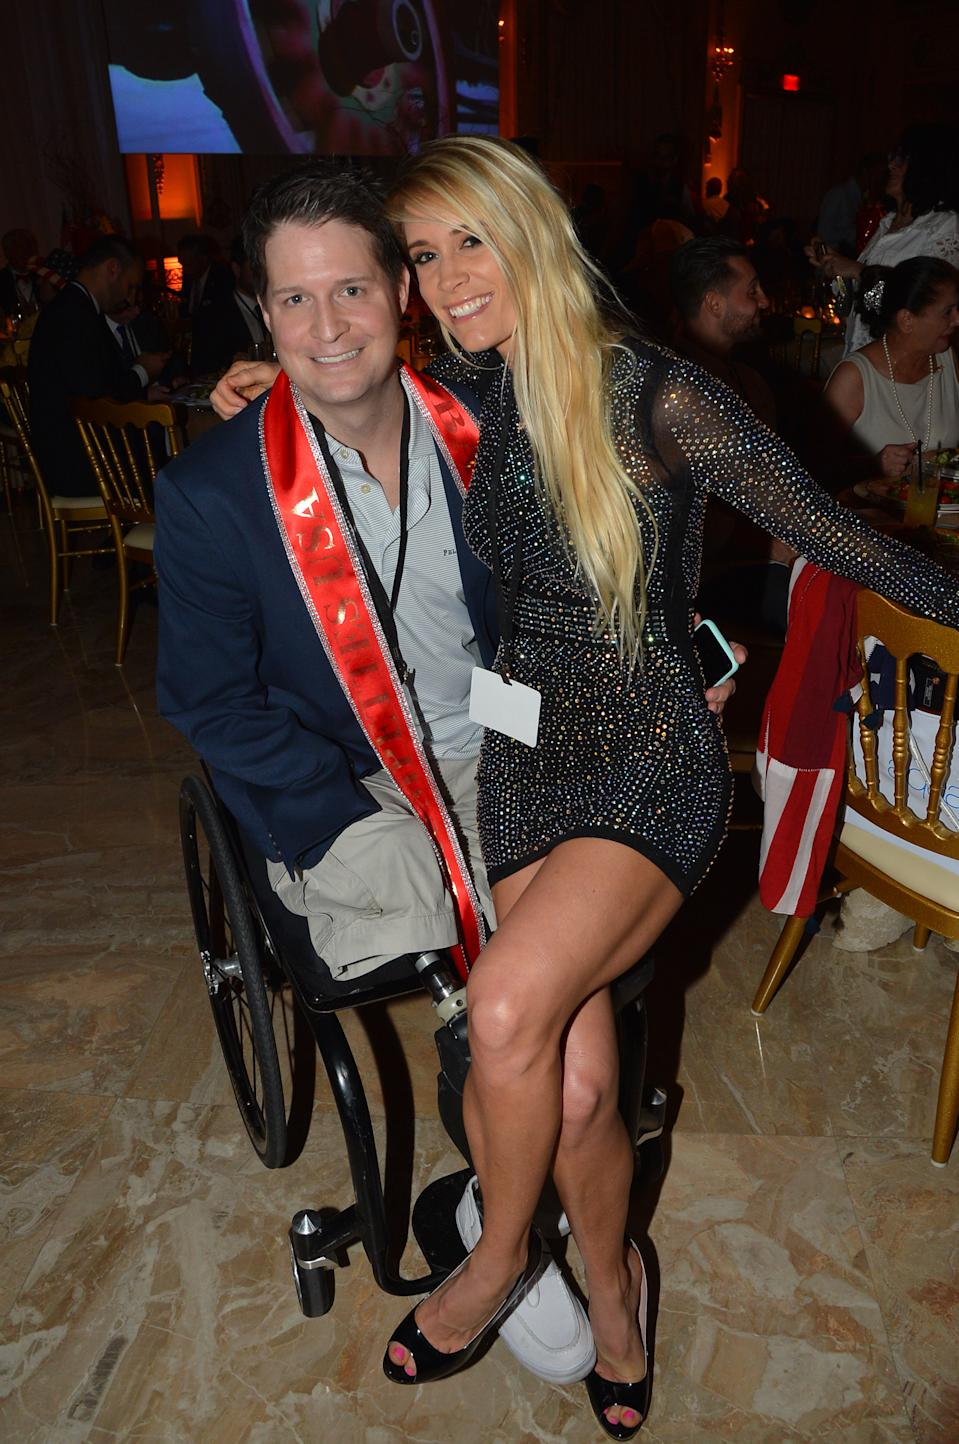 Brian Kolfage and wife Ashley Kolfage attend Country Comes To Mar-a-Lago, a gala hosted by a group of female Trump supporters at the President's private Mar-a-Lago club on February 23, 2019 in Palm Beach, FL. (Patrick McMullan/Patrick McMullan via Getty Images)